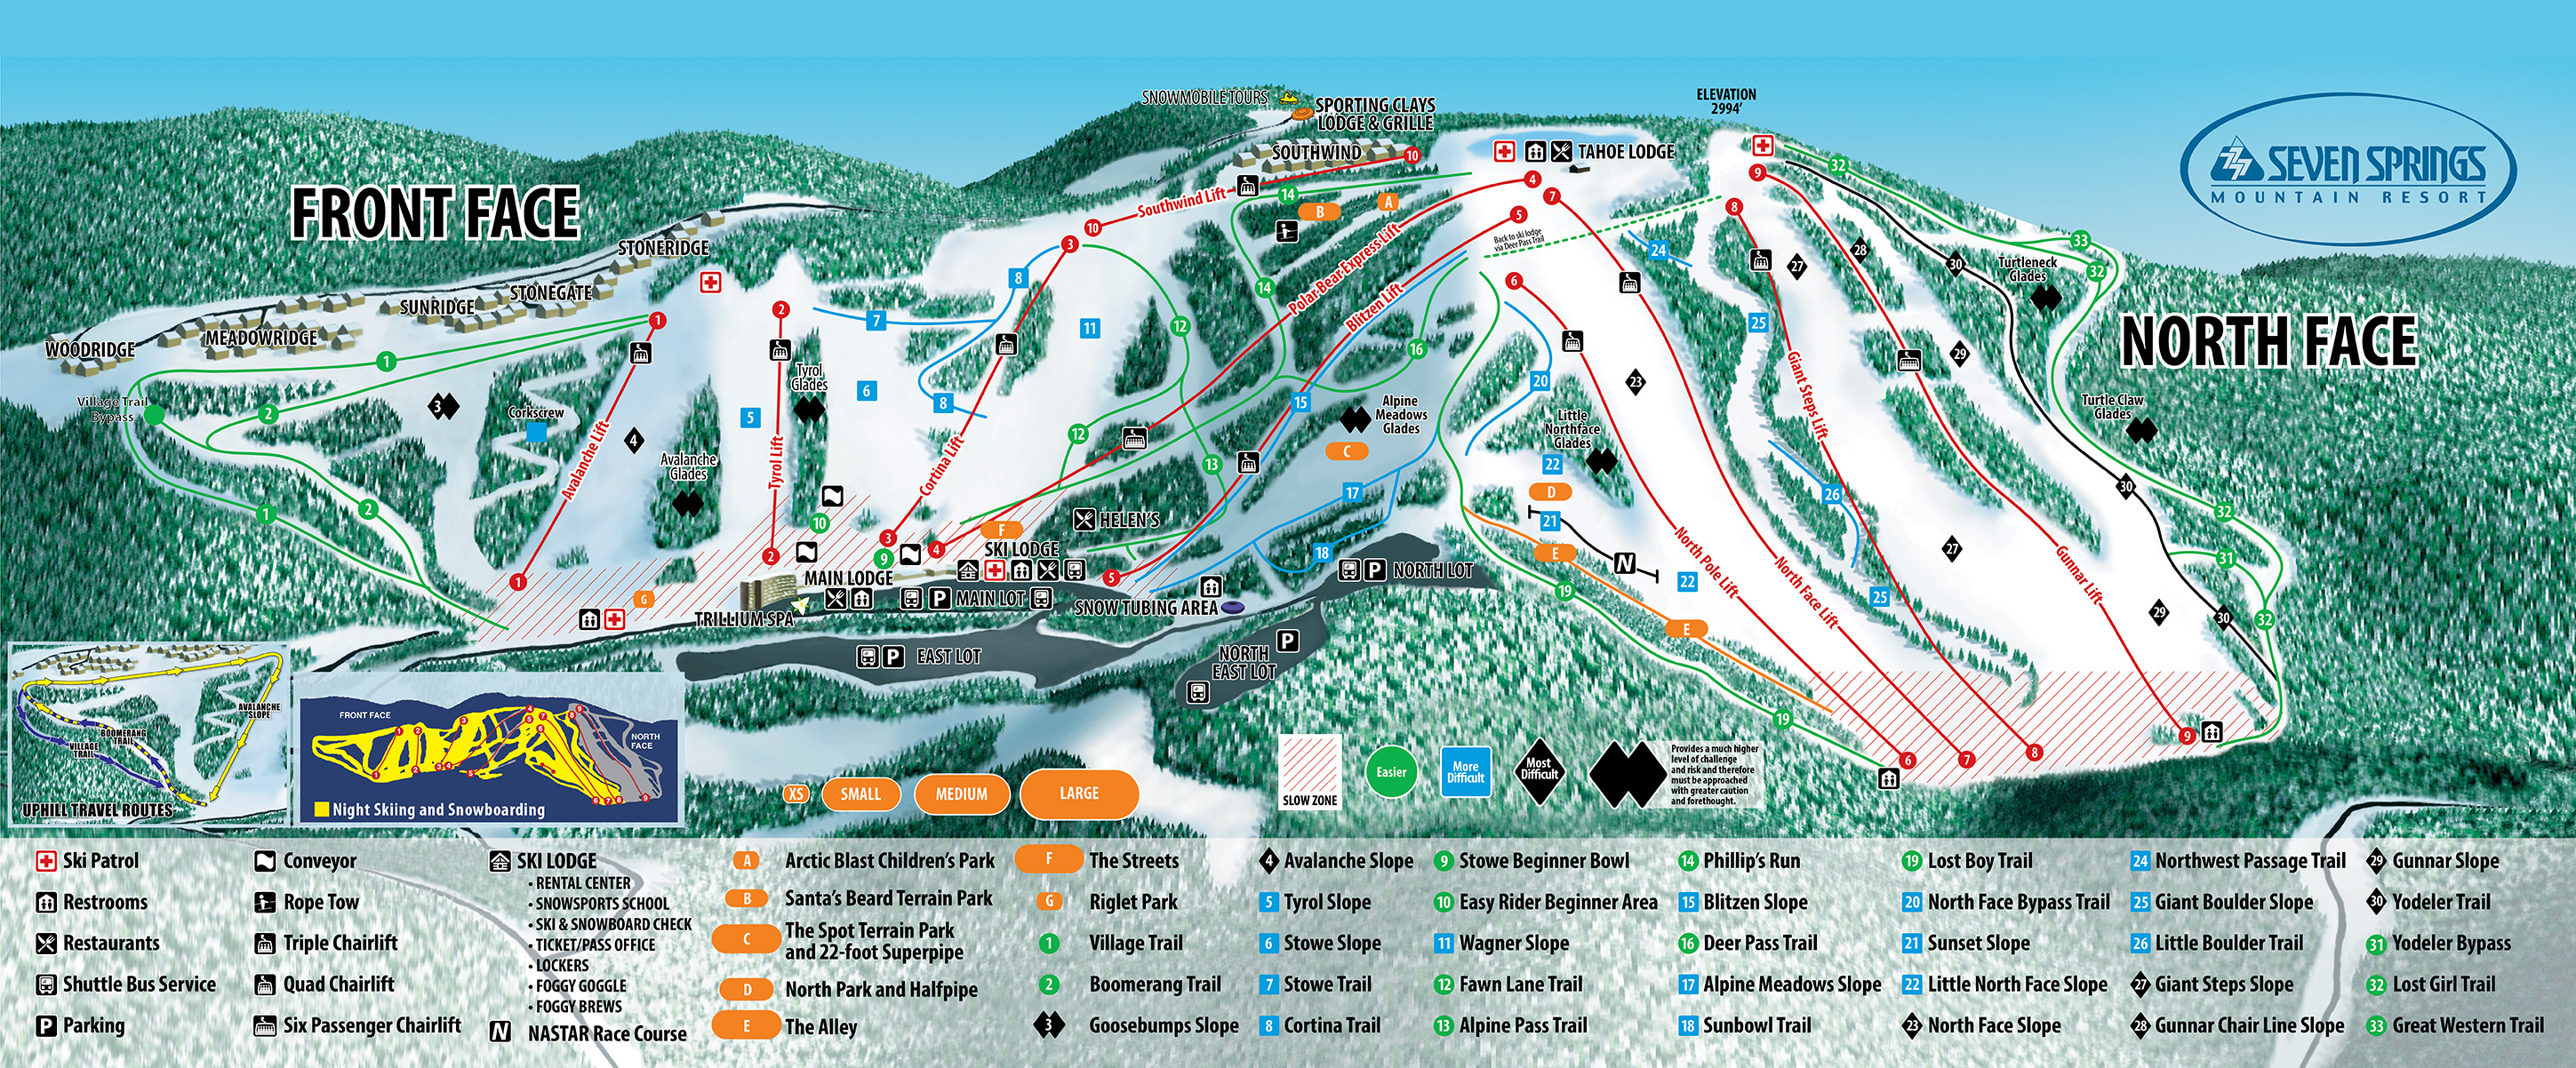 Trail Map PA Pennsylvania Ski Resort Four Season Resort - Western us ski resorts map